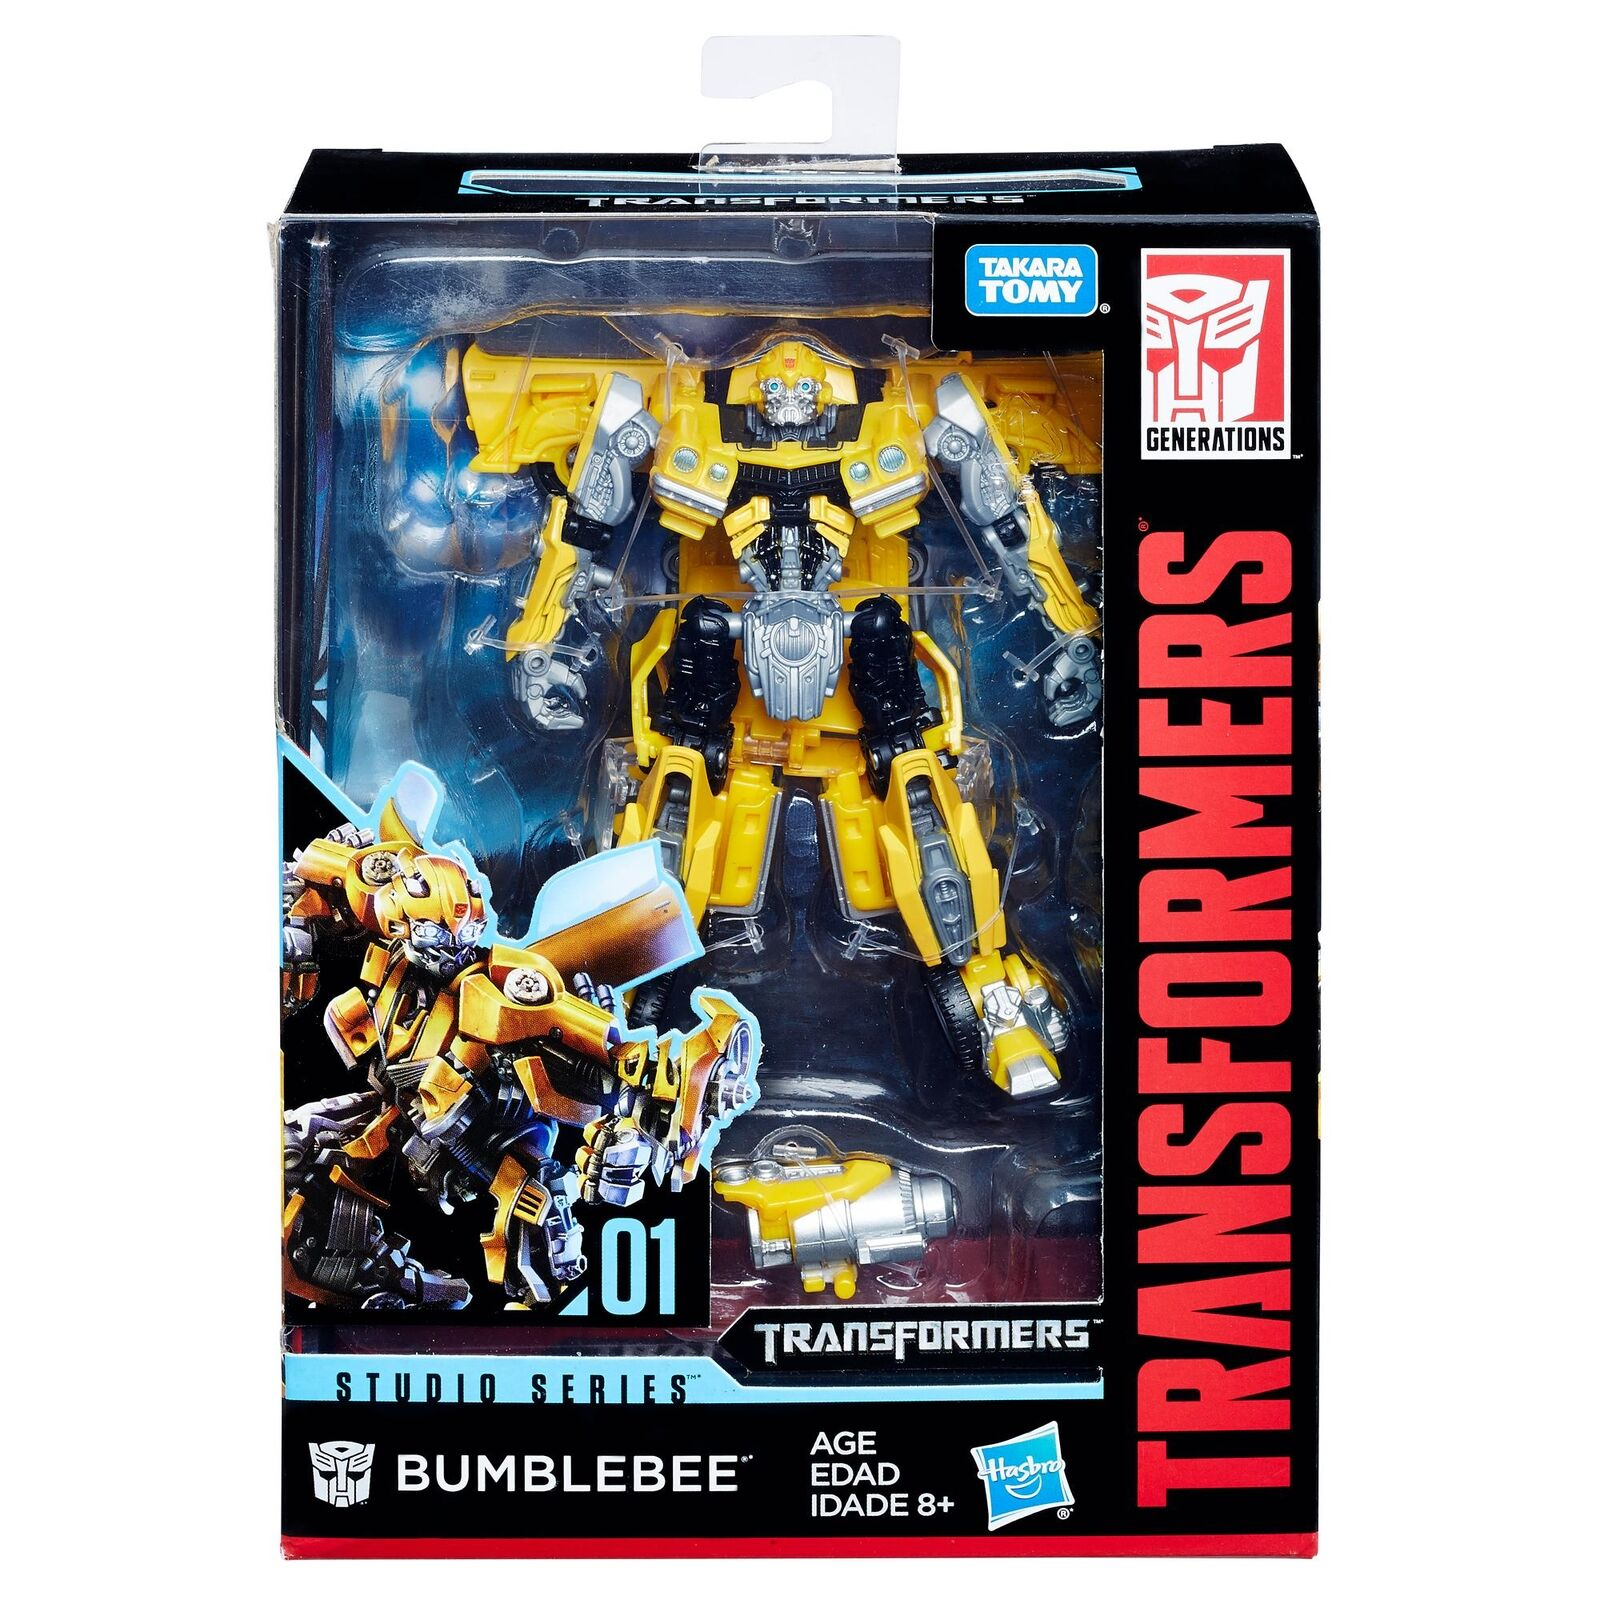 Hasbro Transformers Studio Series Deluxe Class Movie Bumblebee